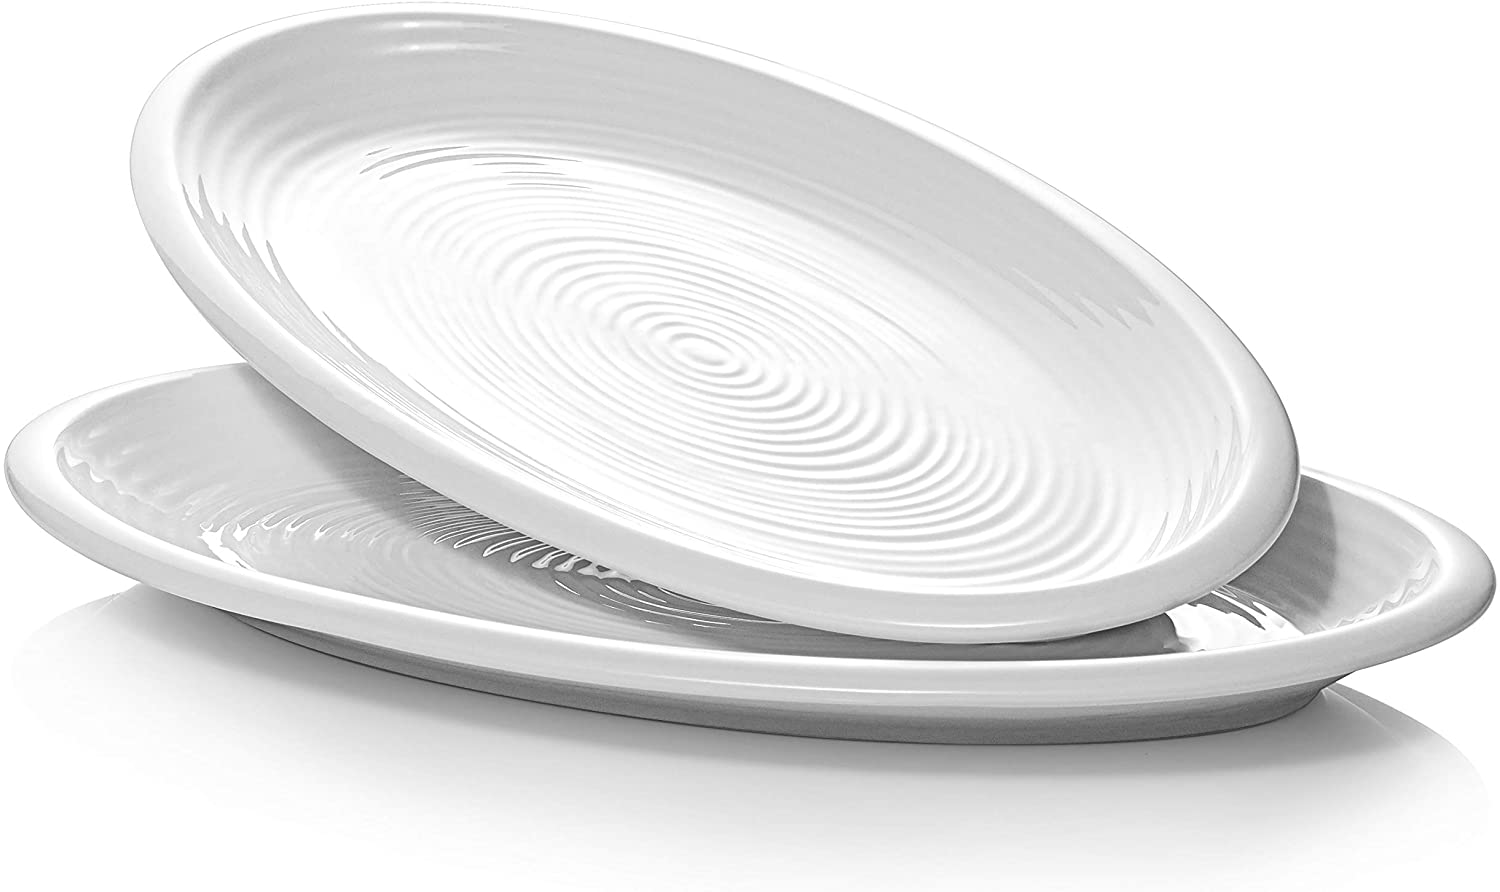 DOWAN Serving Platters - 12 Inches Oval Platters Serving Plates Porcelain White Oven Safe for Meat, Appetizers, Dessert, Food, Party, Set of 2, White